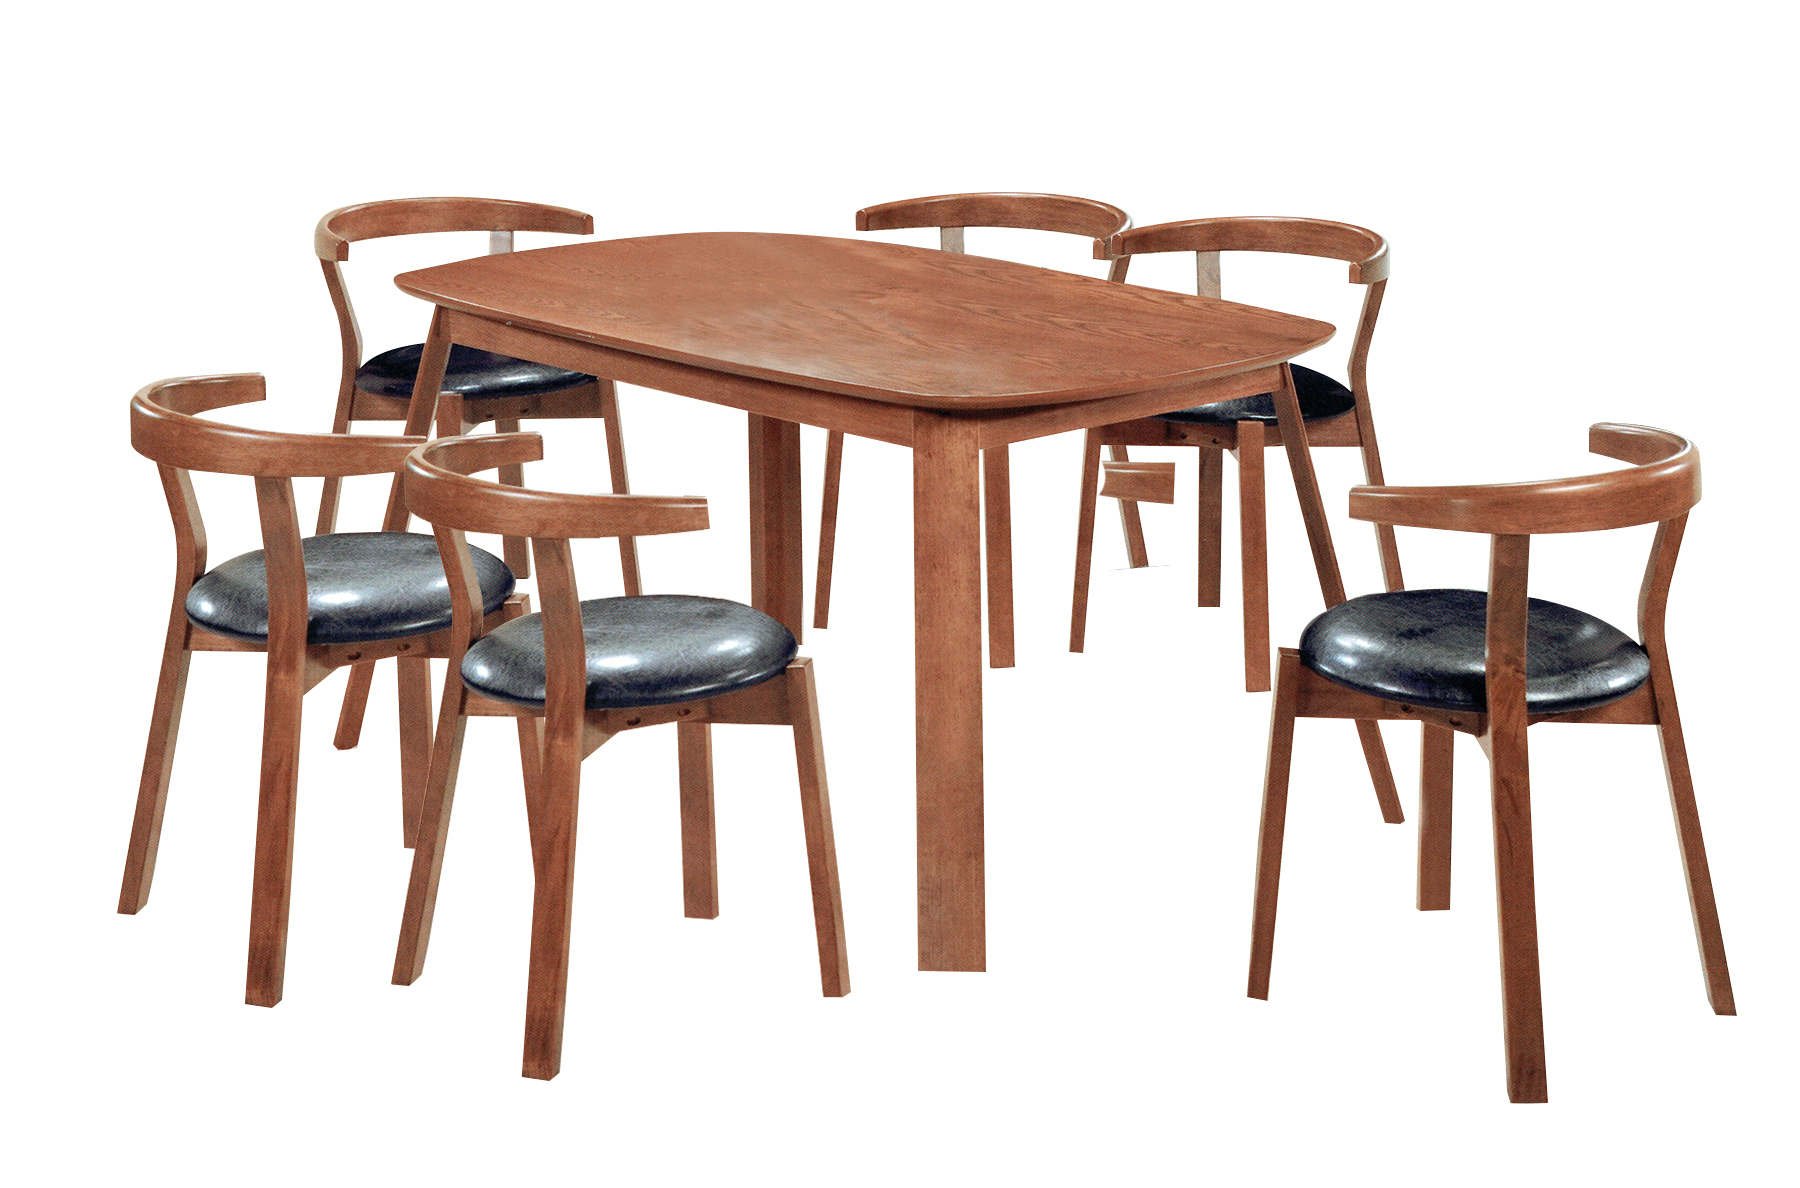 dining set nikkei T+6 chairs.jpg